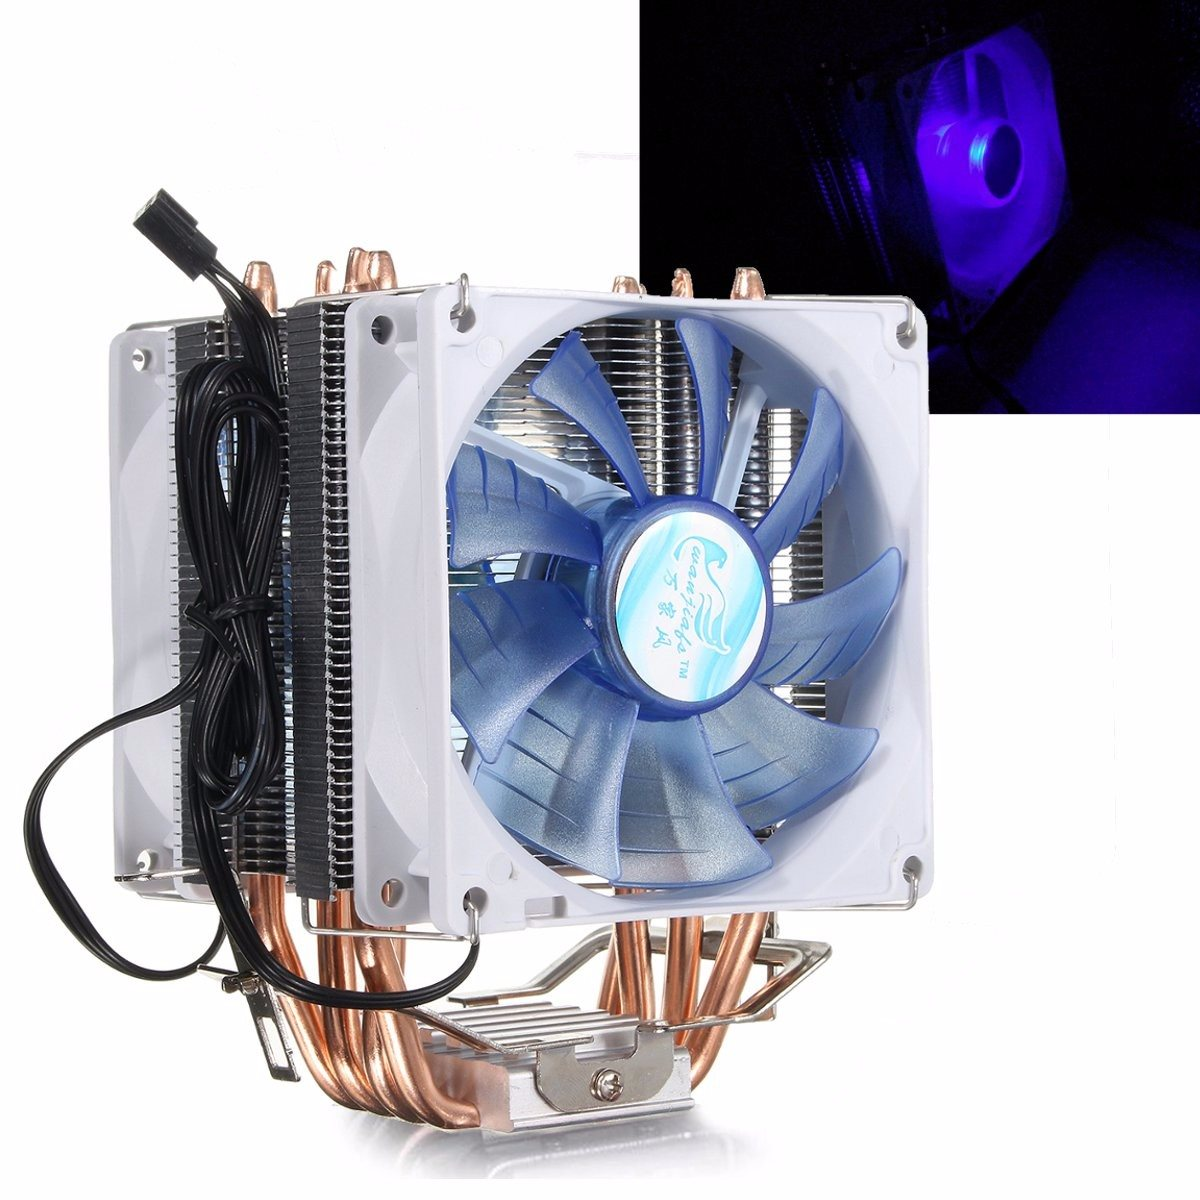 12V Dual CPU Cooler Fan Quiet Blue LED Light 92x92x25mm 3pin Powerful Fan Heatsink for Intel LGA775/1156/1155 for AMD AM2/3 jetting new dual fan cpu quiet cooler heatsink for intel lga775 1156 amd 95w spca